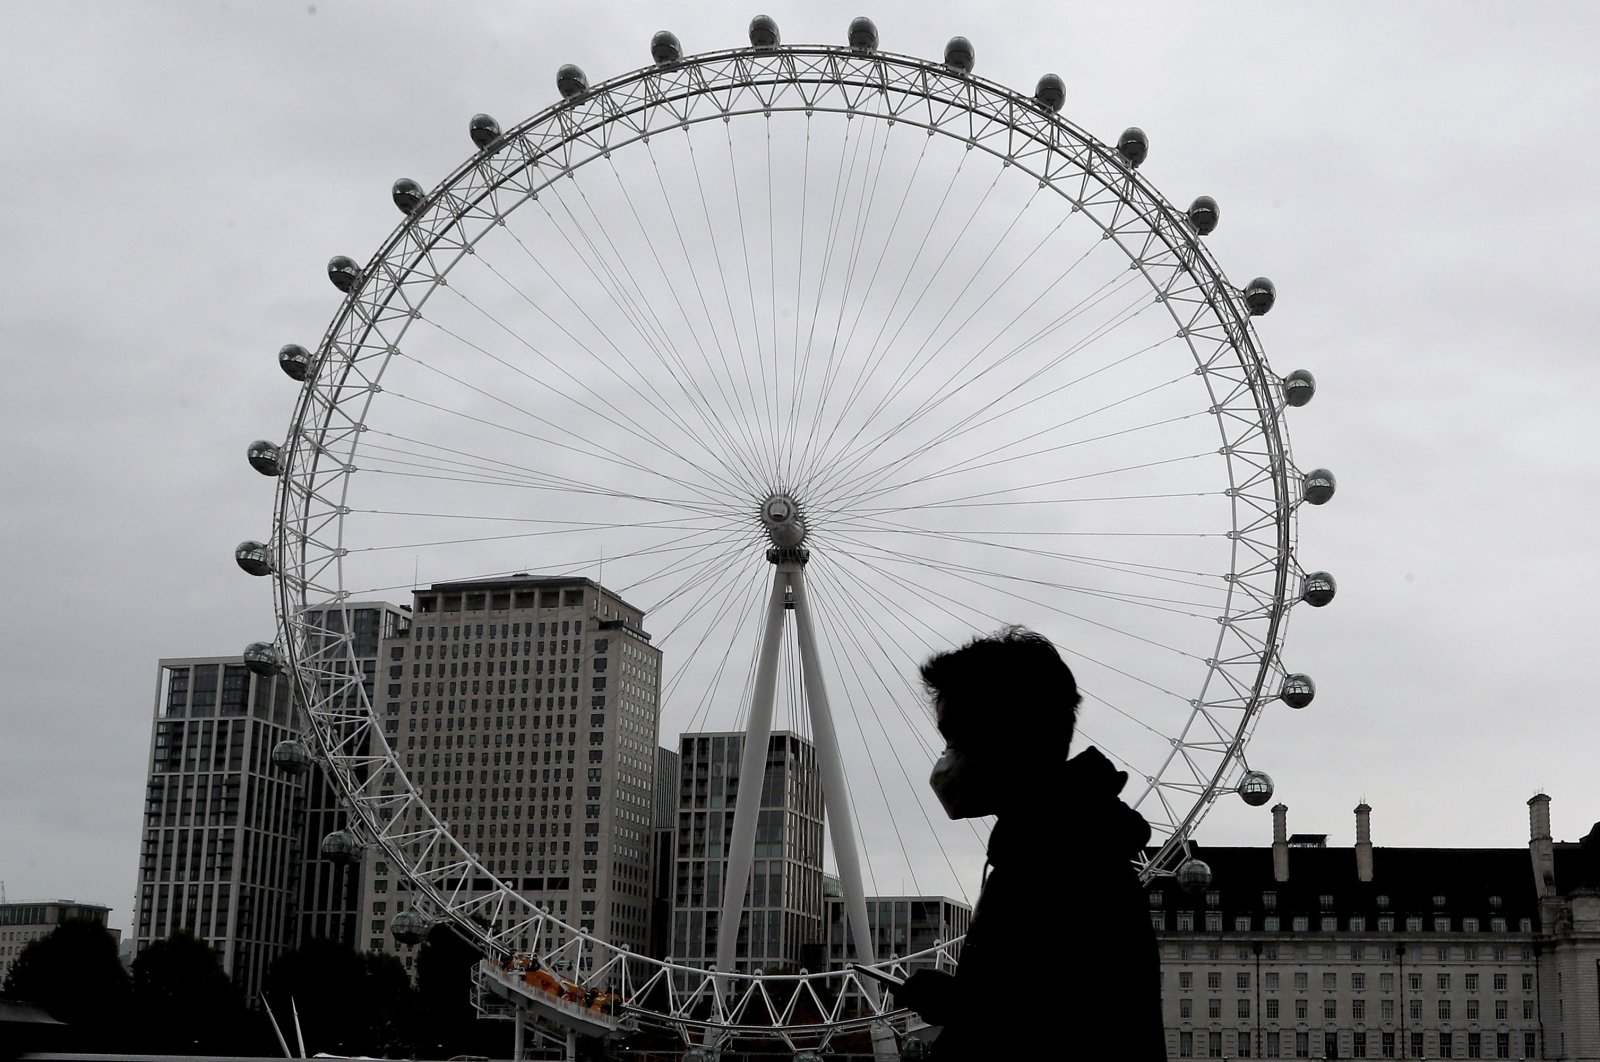 A man wears a face mask as he passes the London Eye in London, Oct. 29, 2020. (AP Photo)